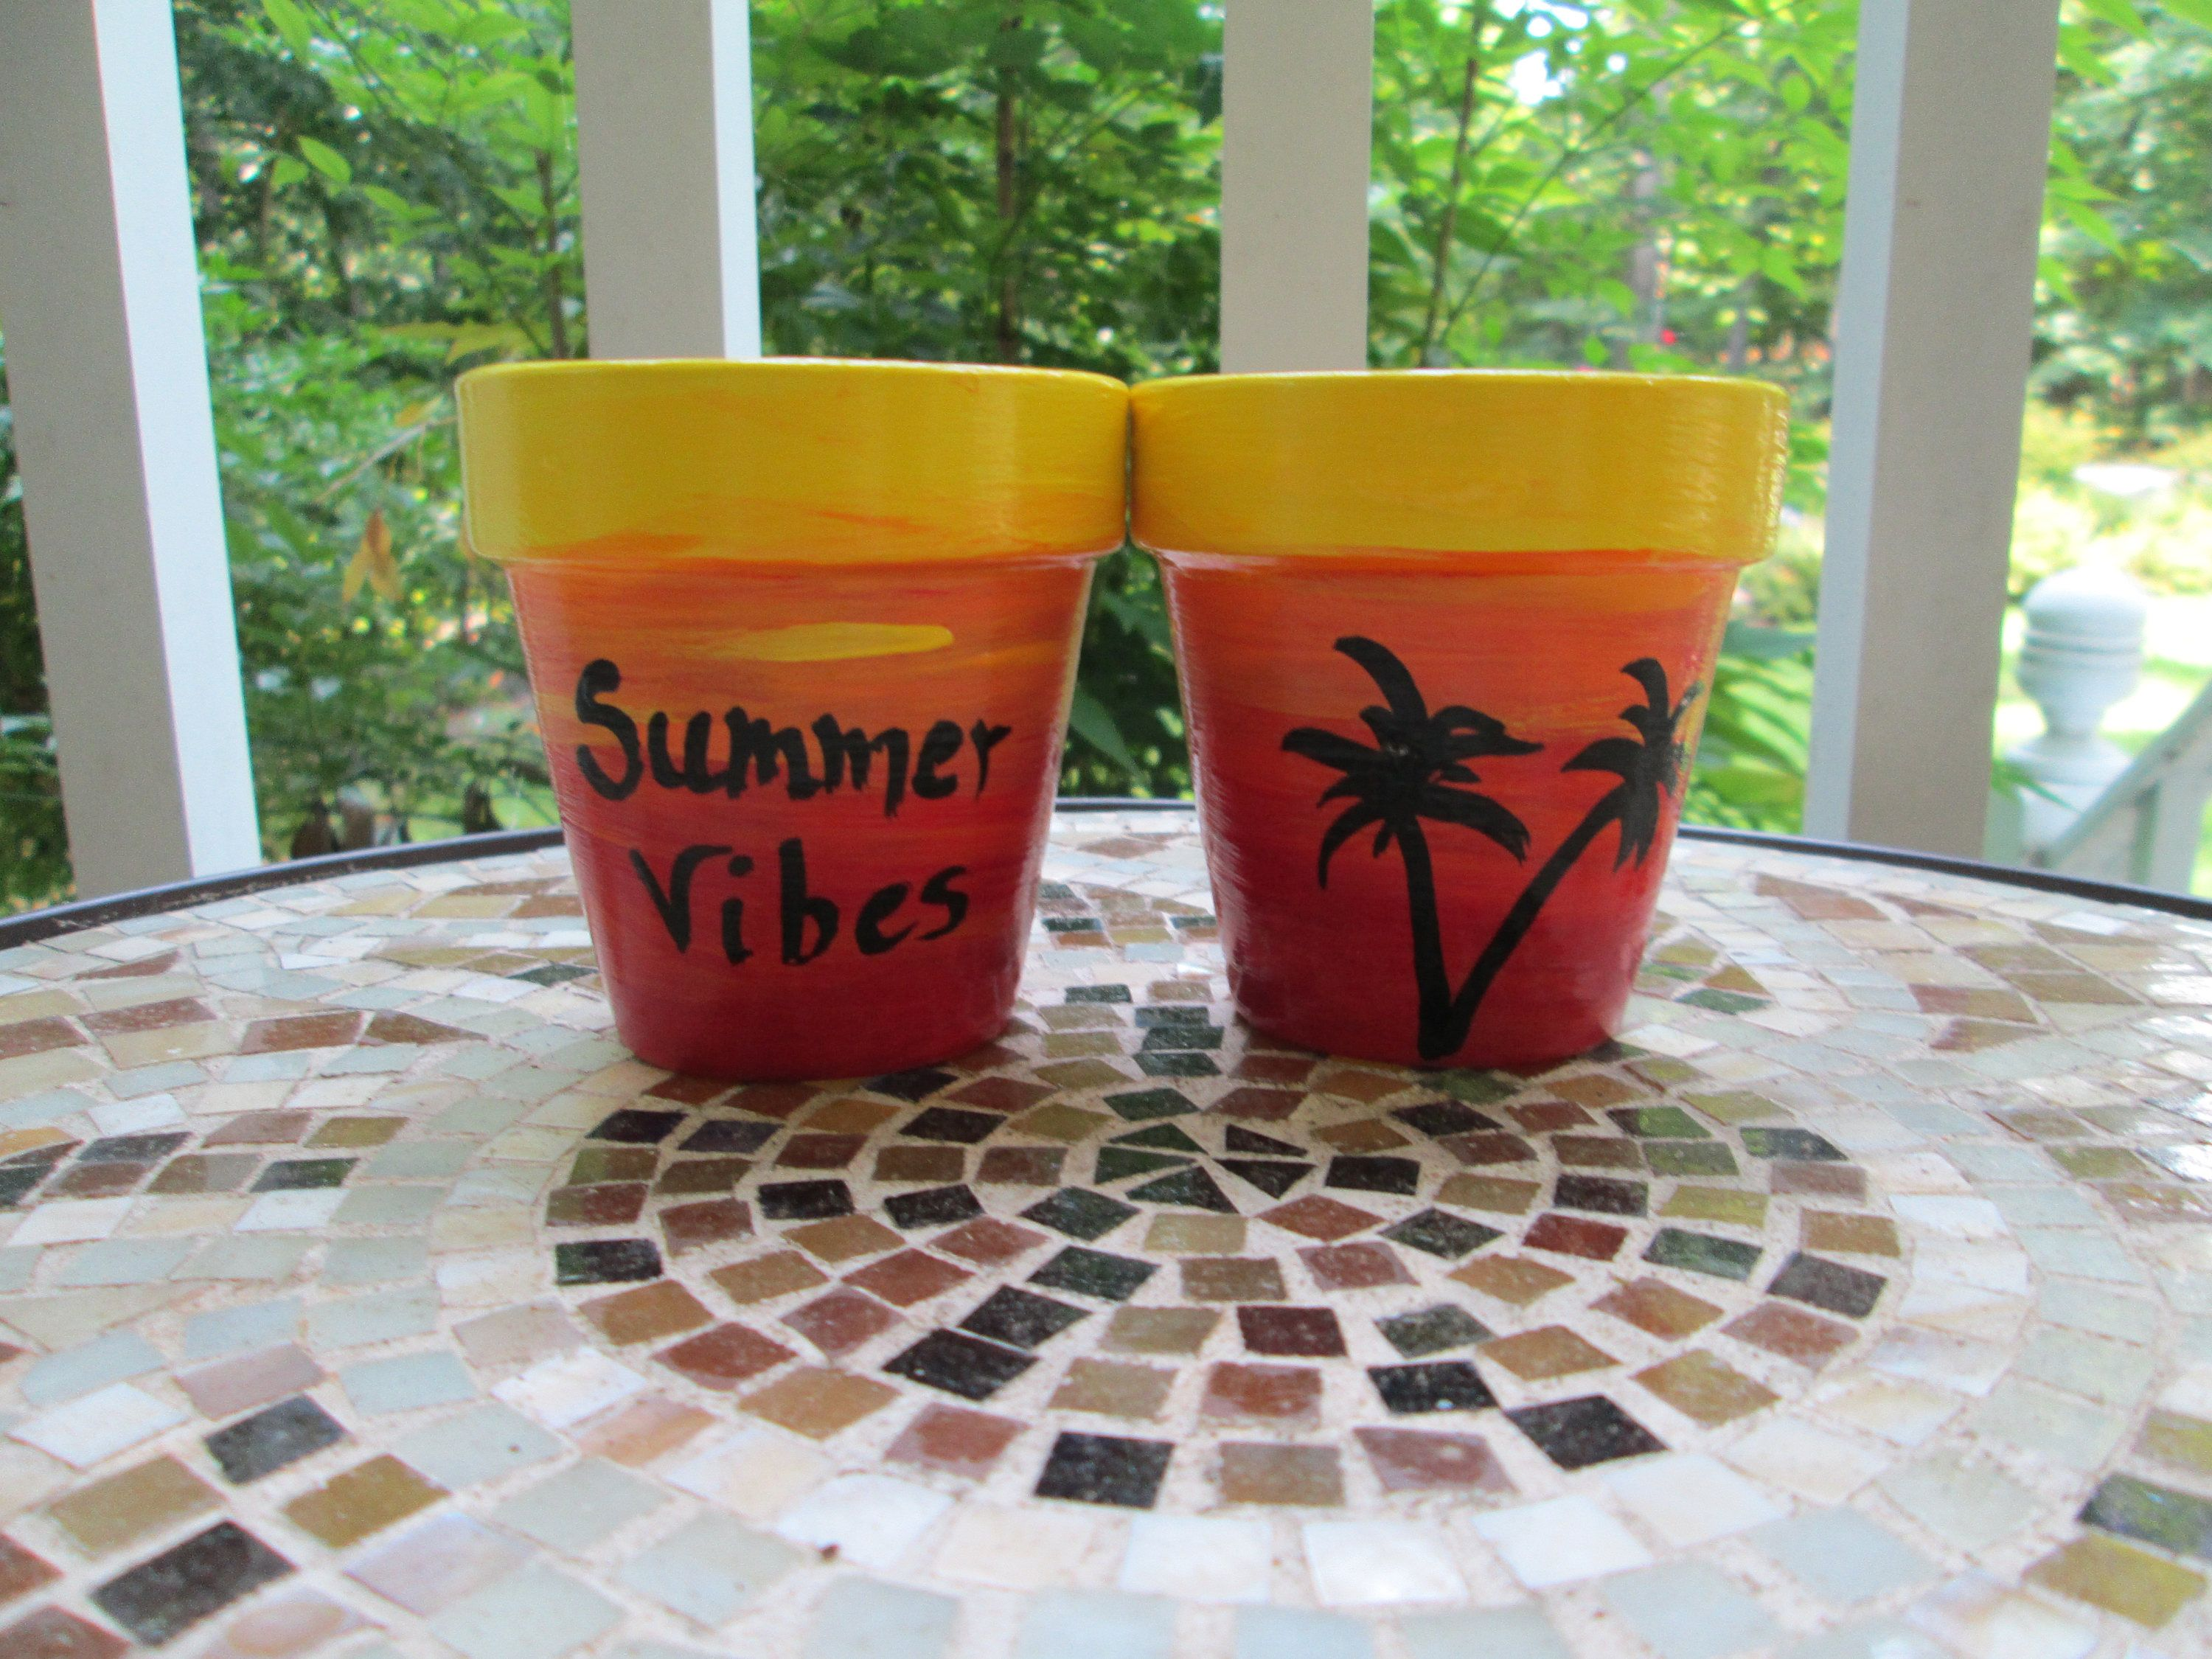 Summer Vibes Mini Clay Pots Set Of 2 Hand Painted 2 Inch Clay Pots By Povyart On Etsy Clay Pots Painted Clay Pots Pot Sets